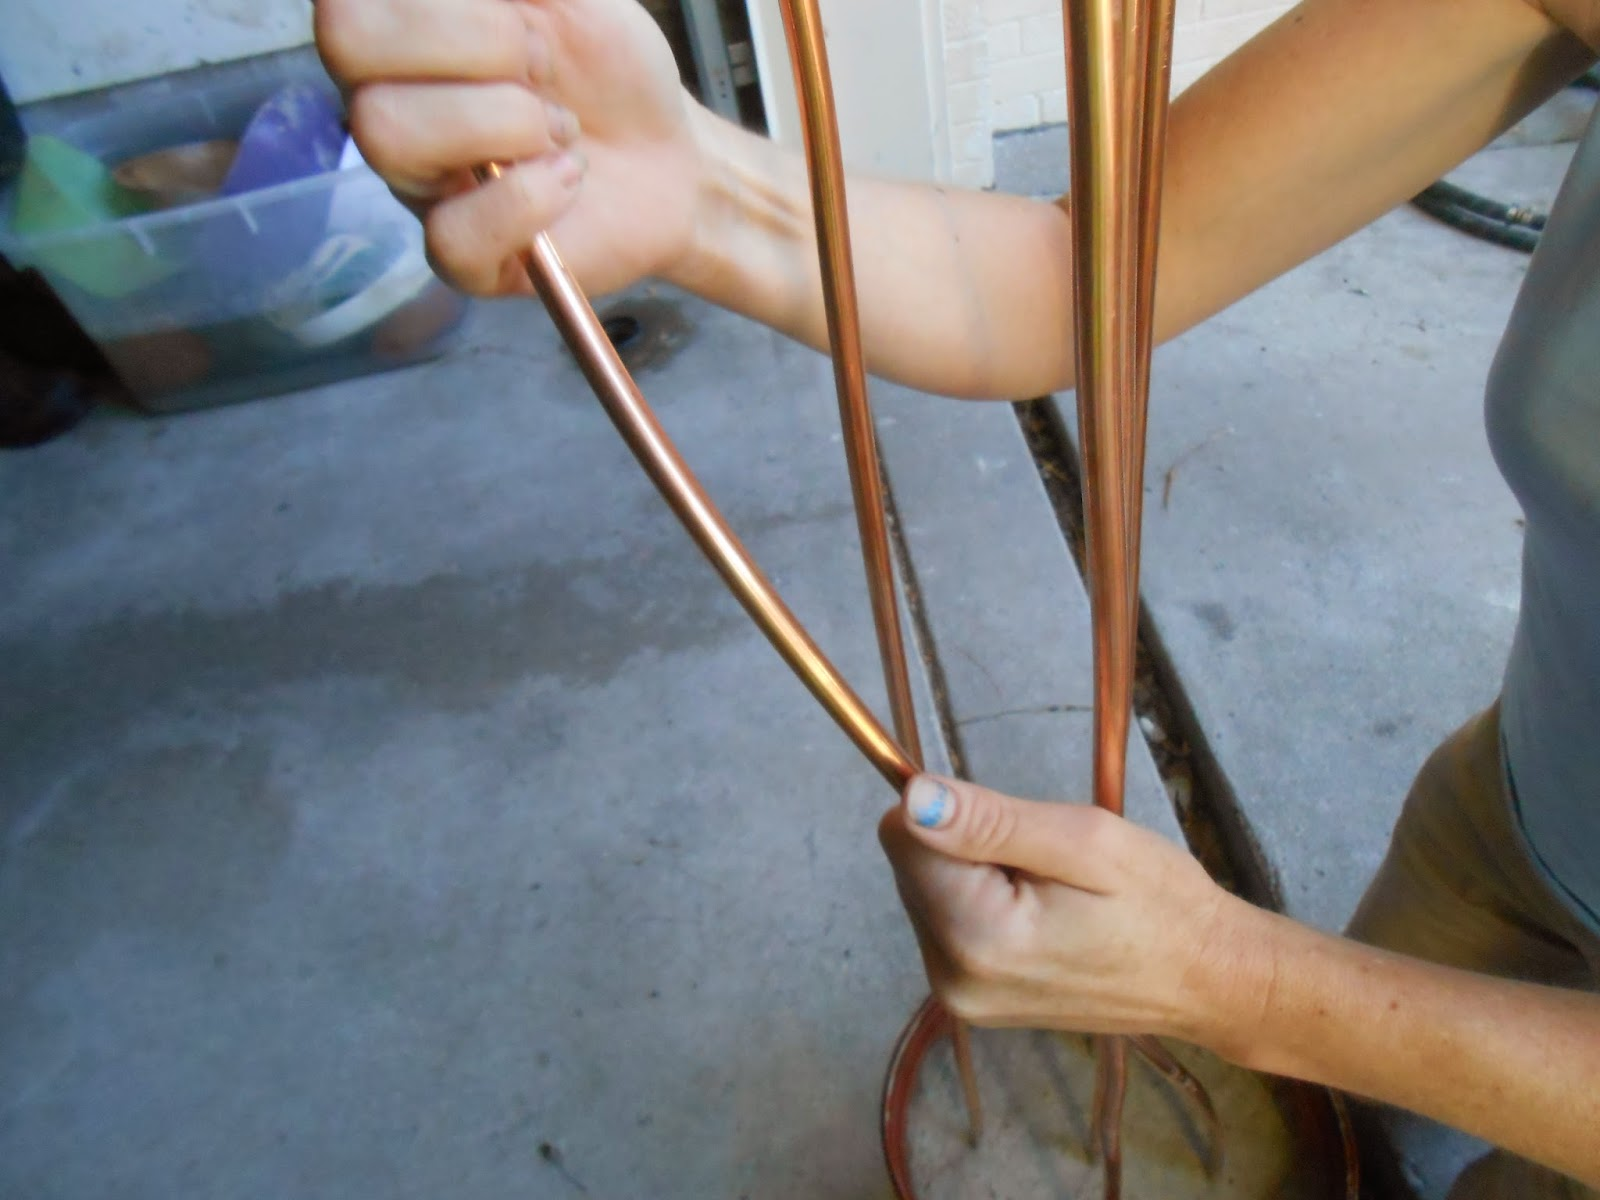 how to cut copper tubing